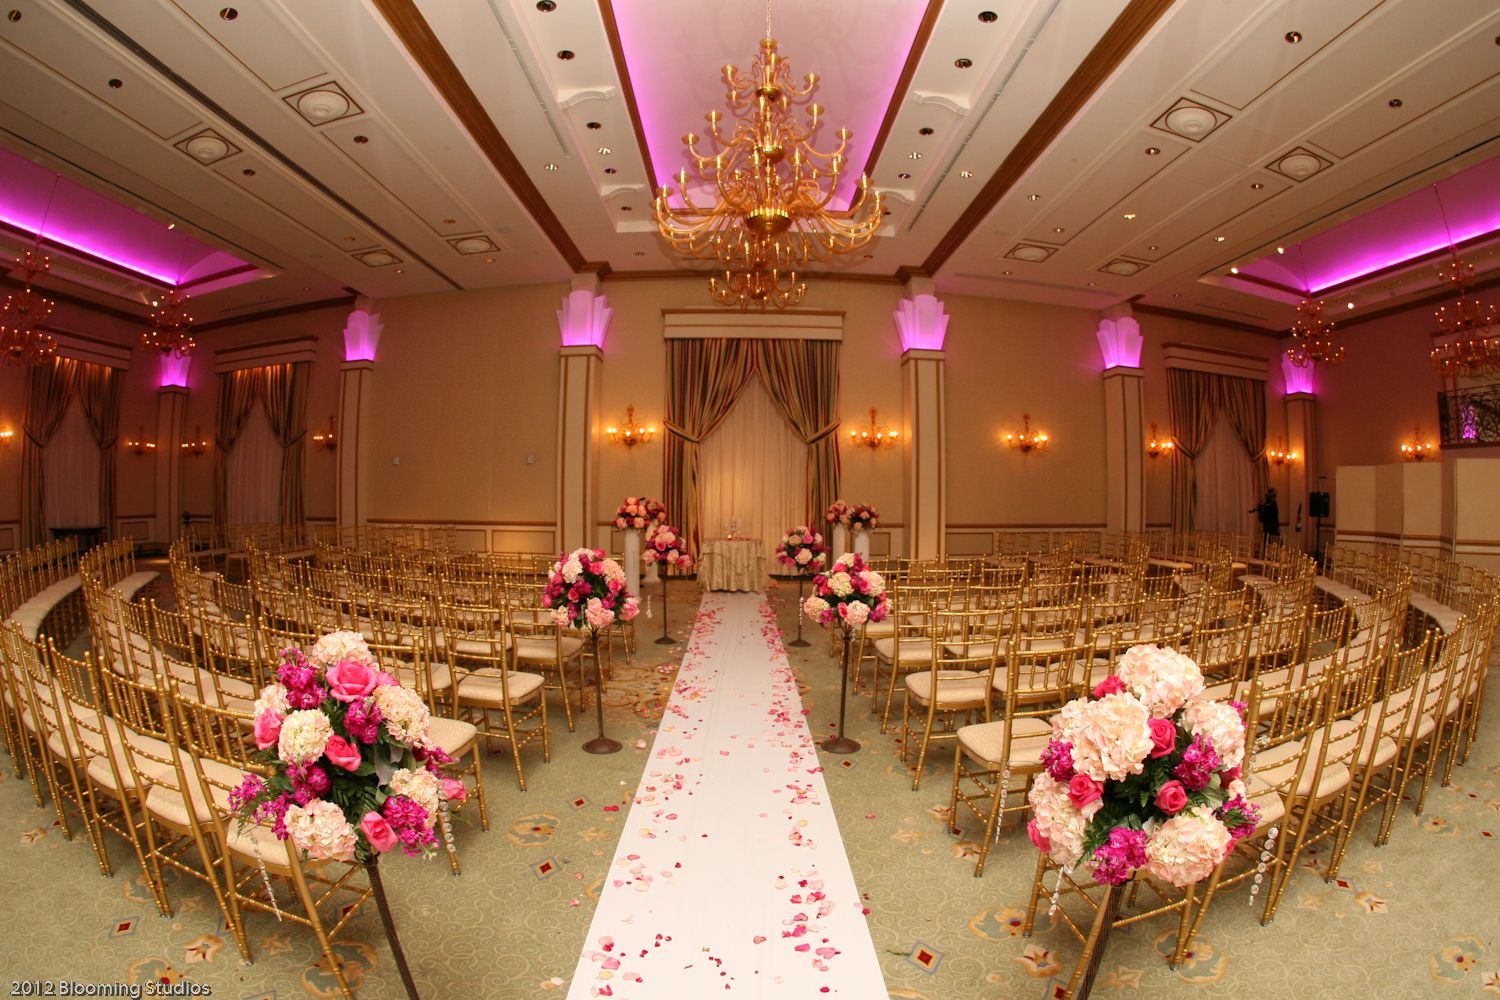 beach wedding in new jersey%0A The Grand Ballroom with different LED lighting colors at a luxury wedding  venueThe Grove in Cedar Grove  New Jersey  Wedding venue New Jersey  cat u